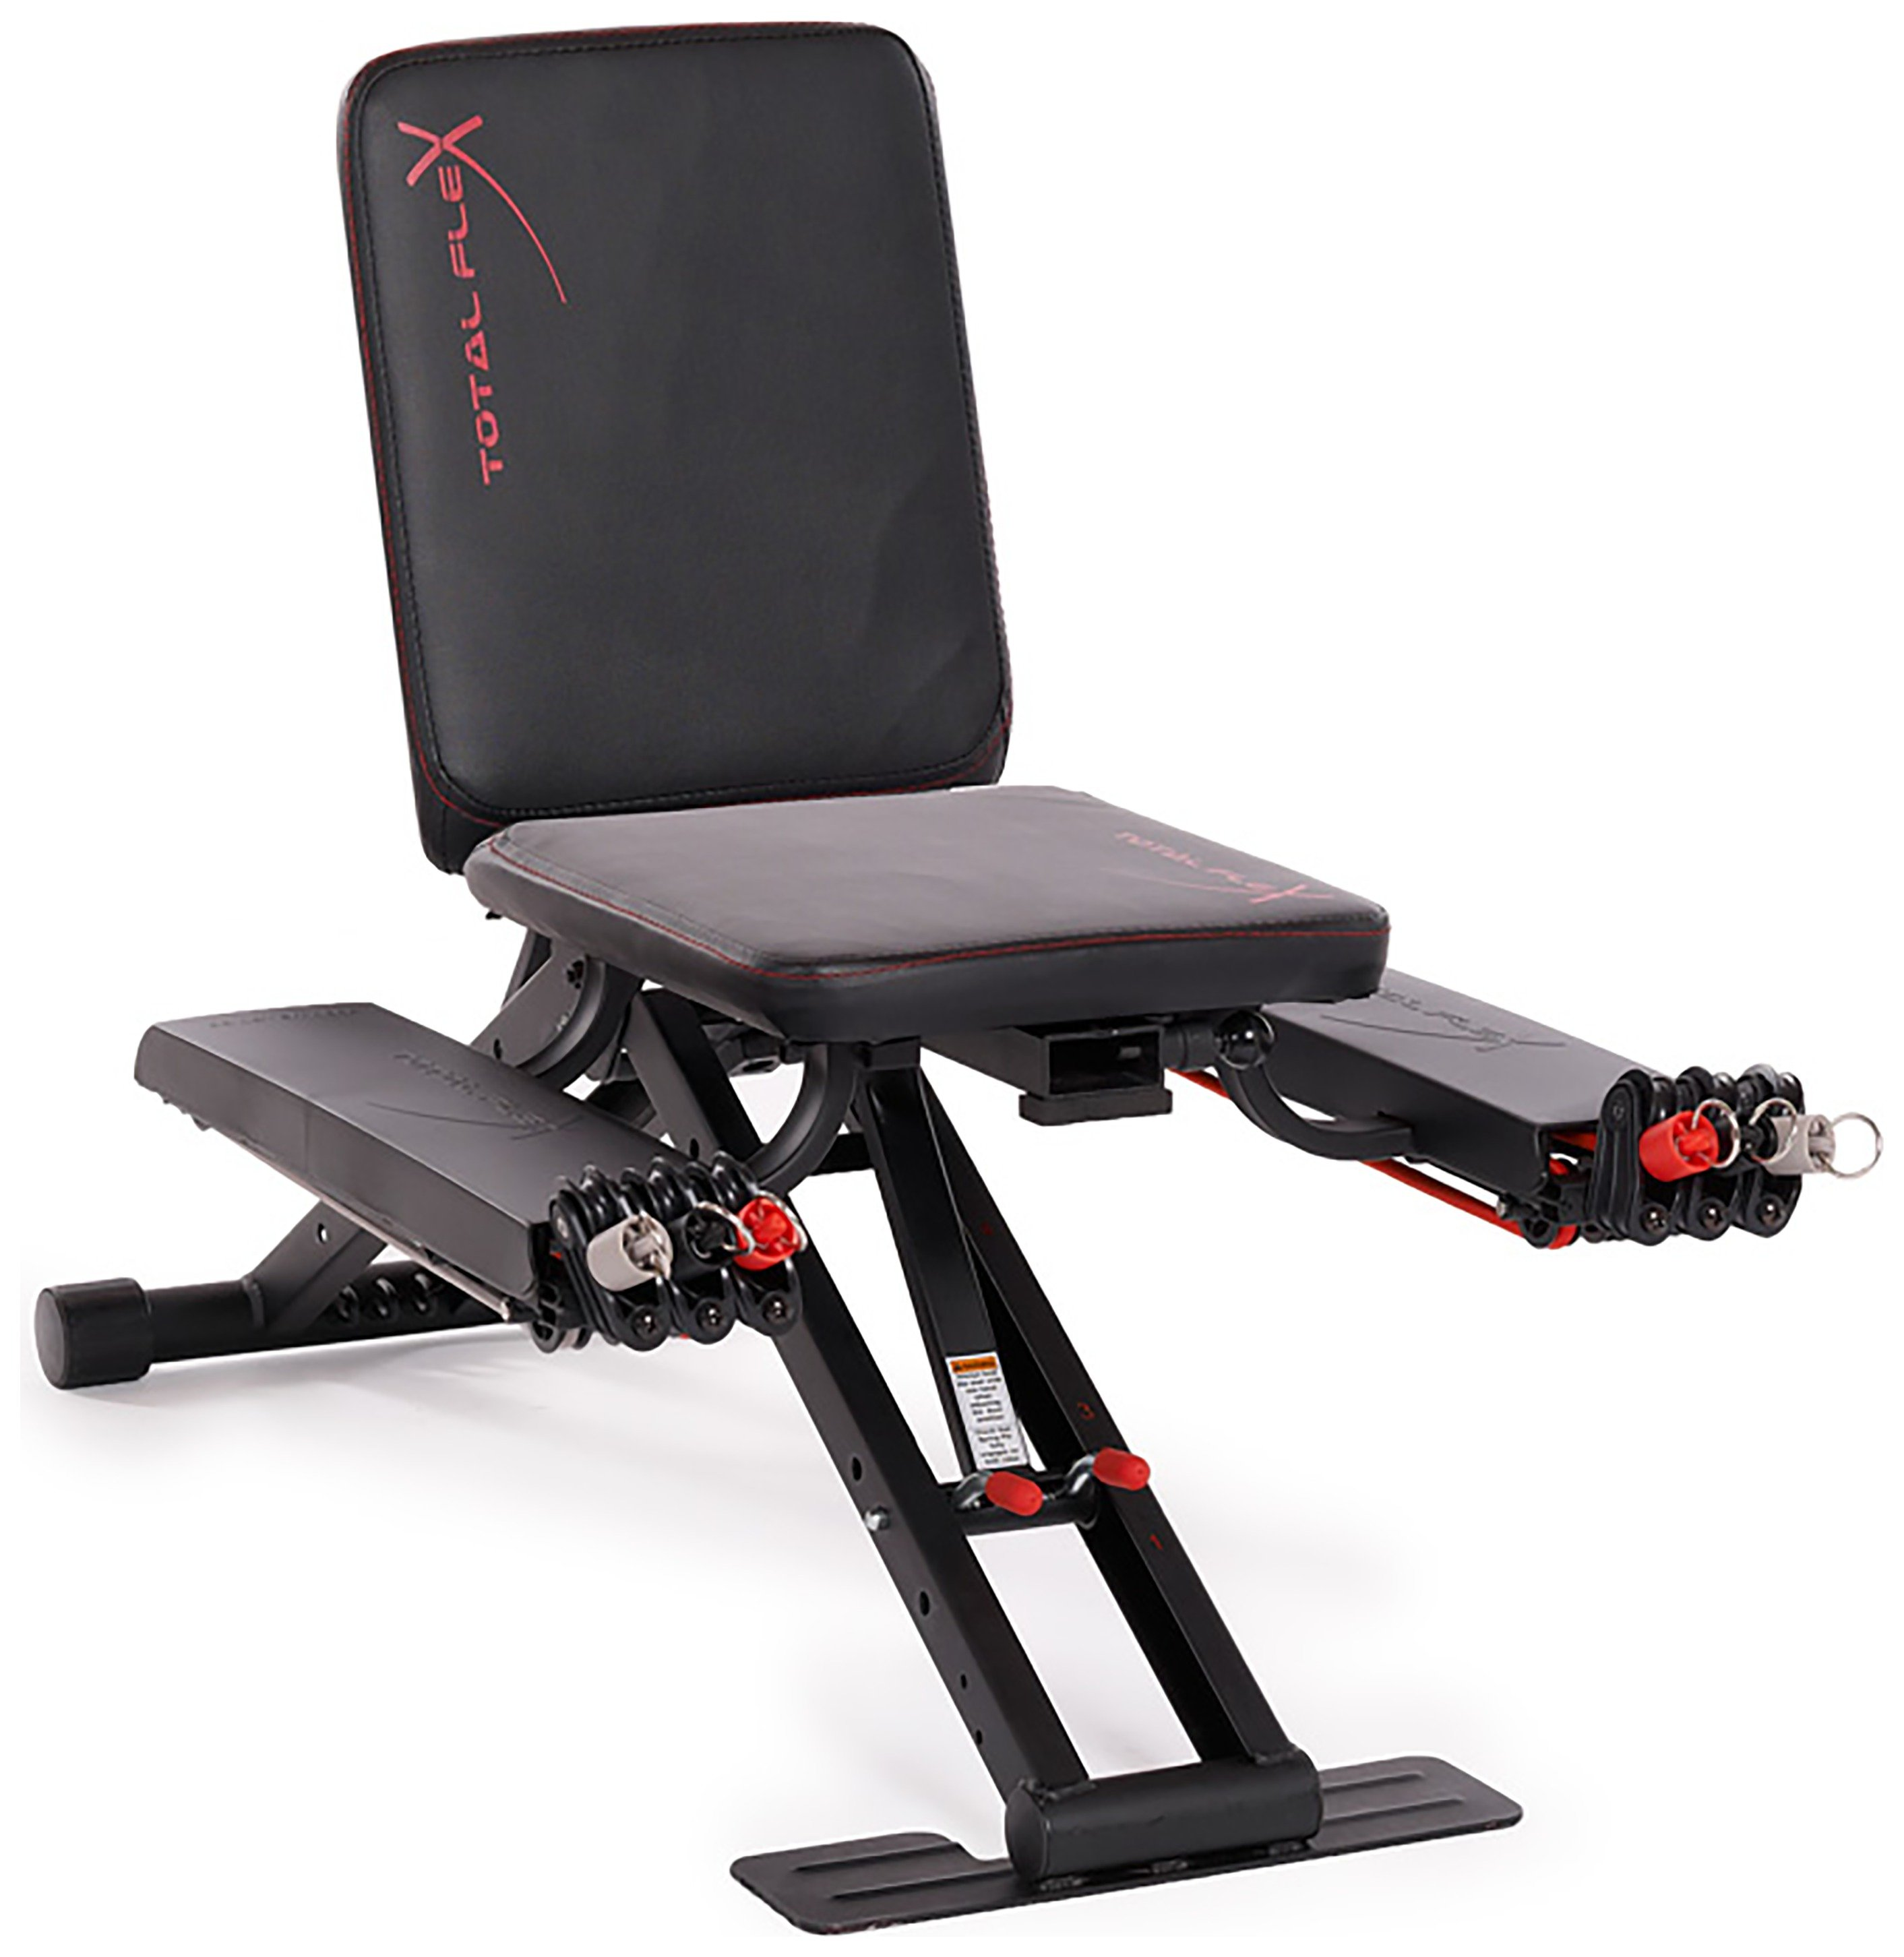 chair gym argos office lumbar support sale on thane total flex home now available